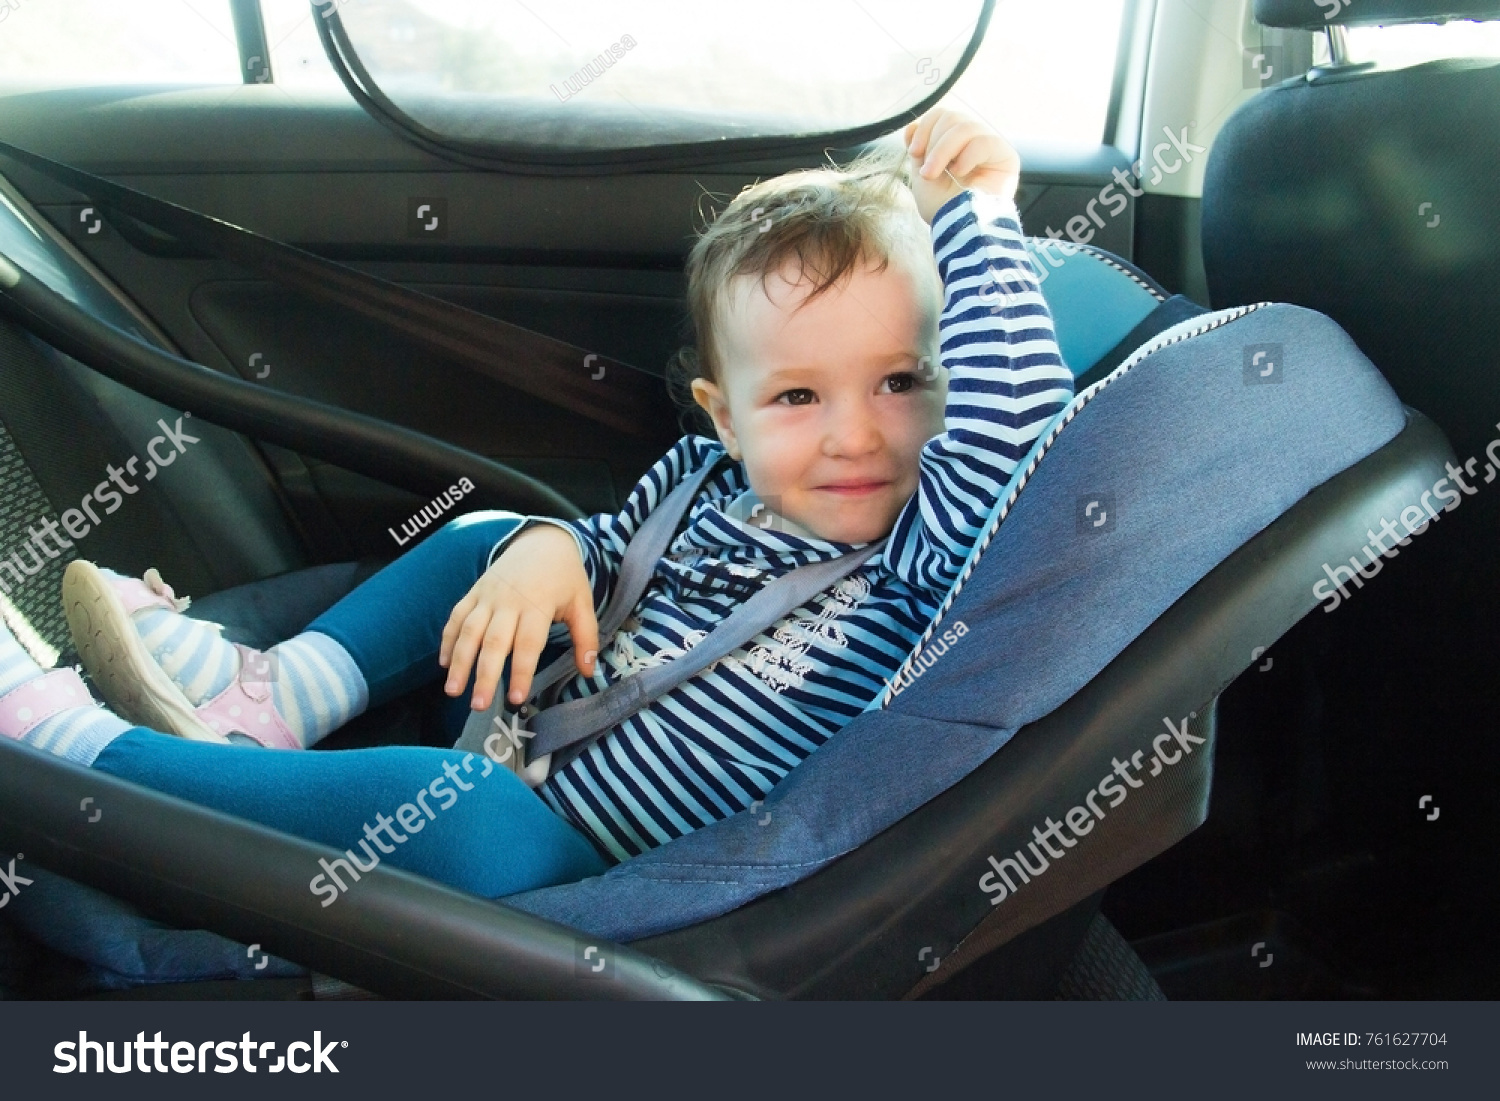 Baby Smile In A Safety Car Seat Safety And Security One Year Old Child